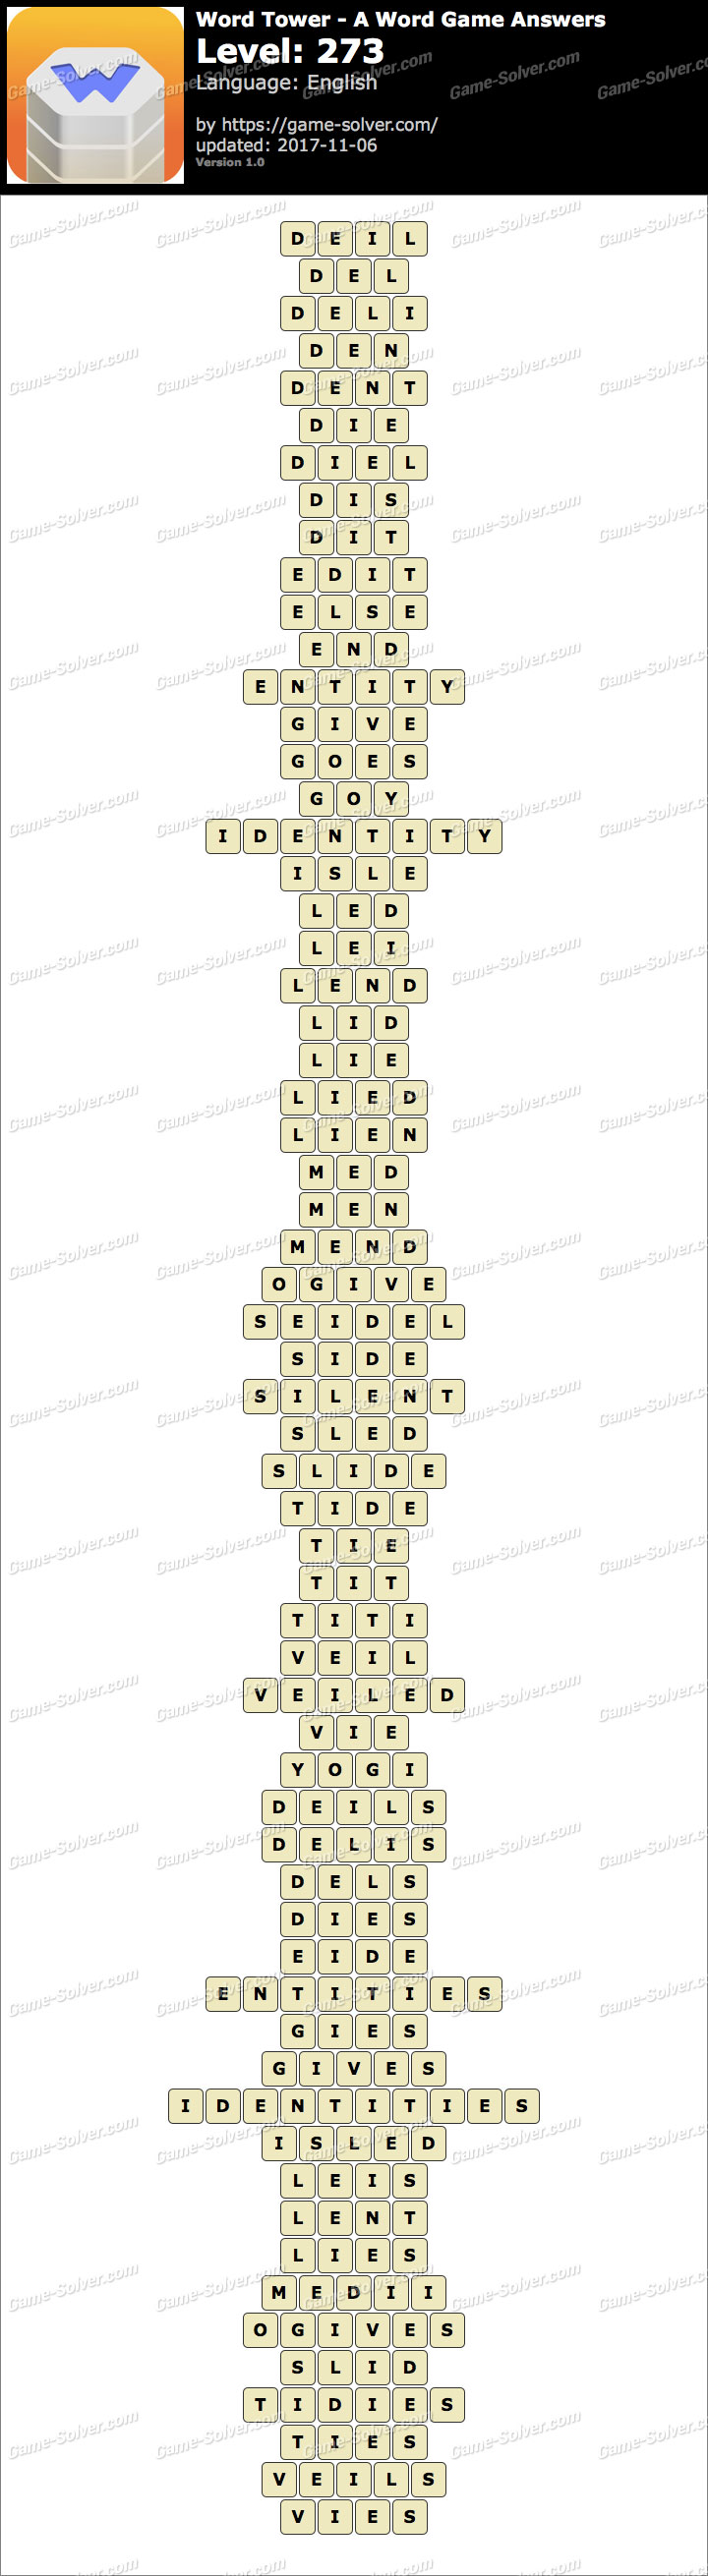 Word Tower Level 273 Answers